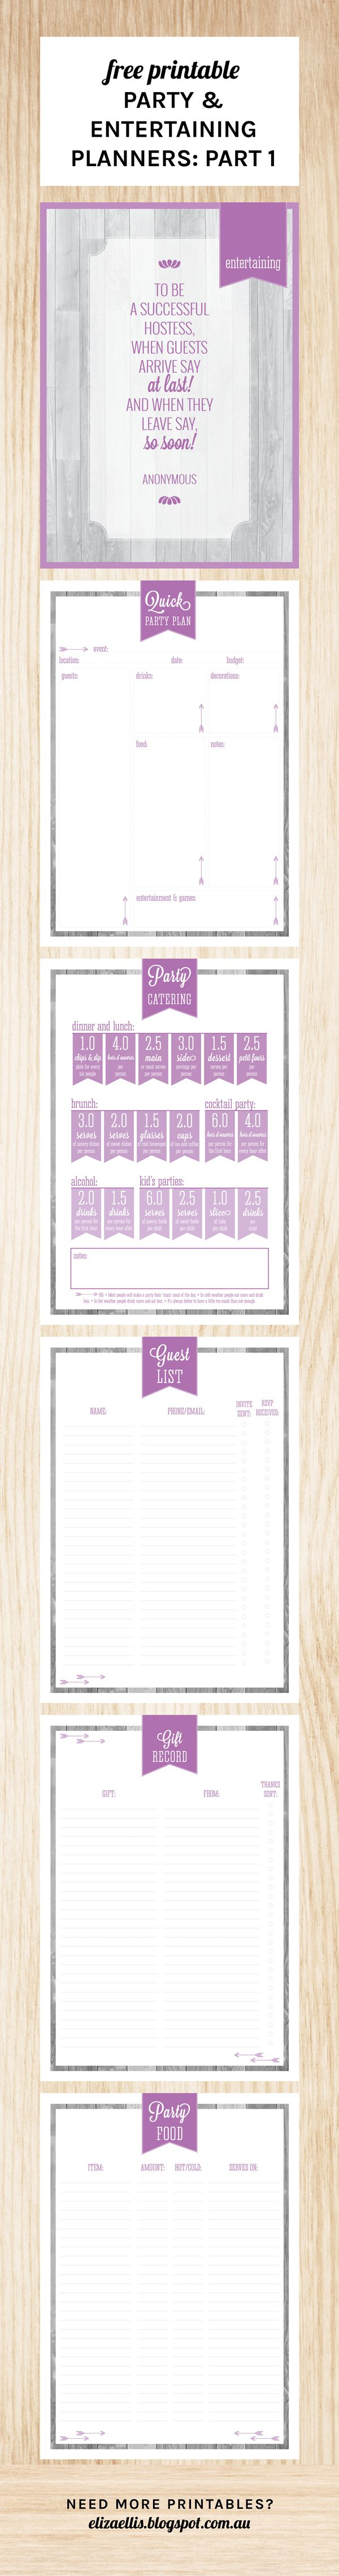 Free Printable Party & Entertaining Planners Part One from Eliza Ellis including catering quantities, party food list, gift record, guest list and a quick party plan - the perfect addition to your Home Management Binder, Control Journal or Home Organizer, this set also includes a section cover :)